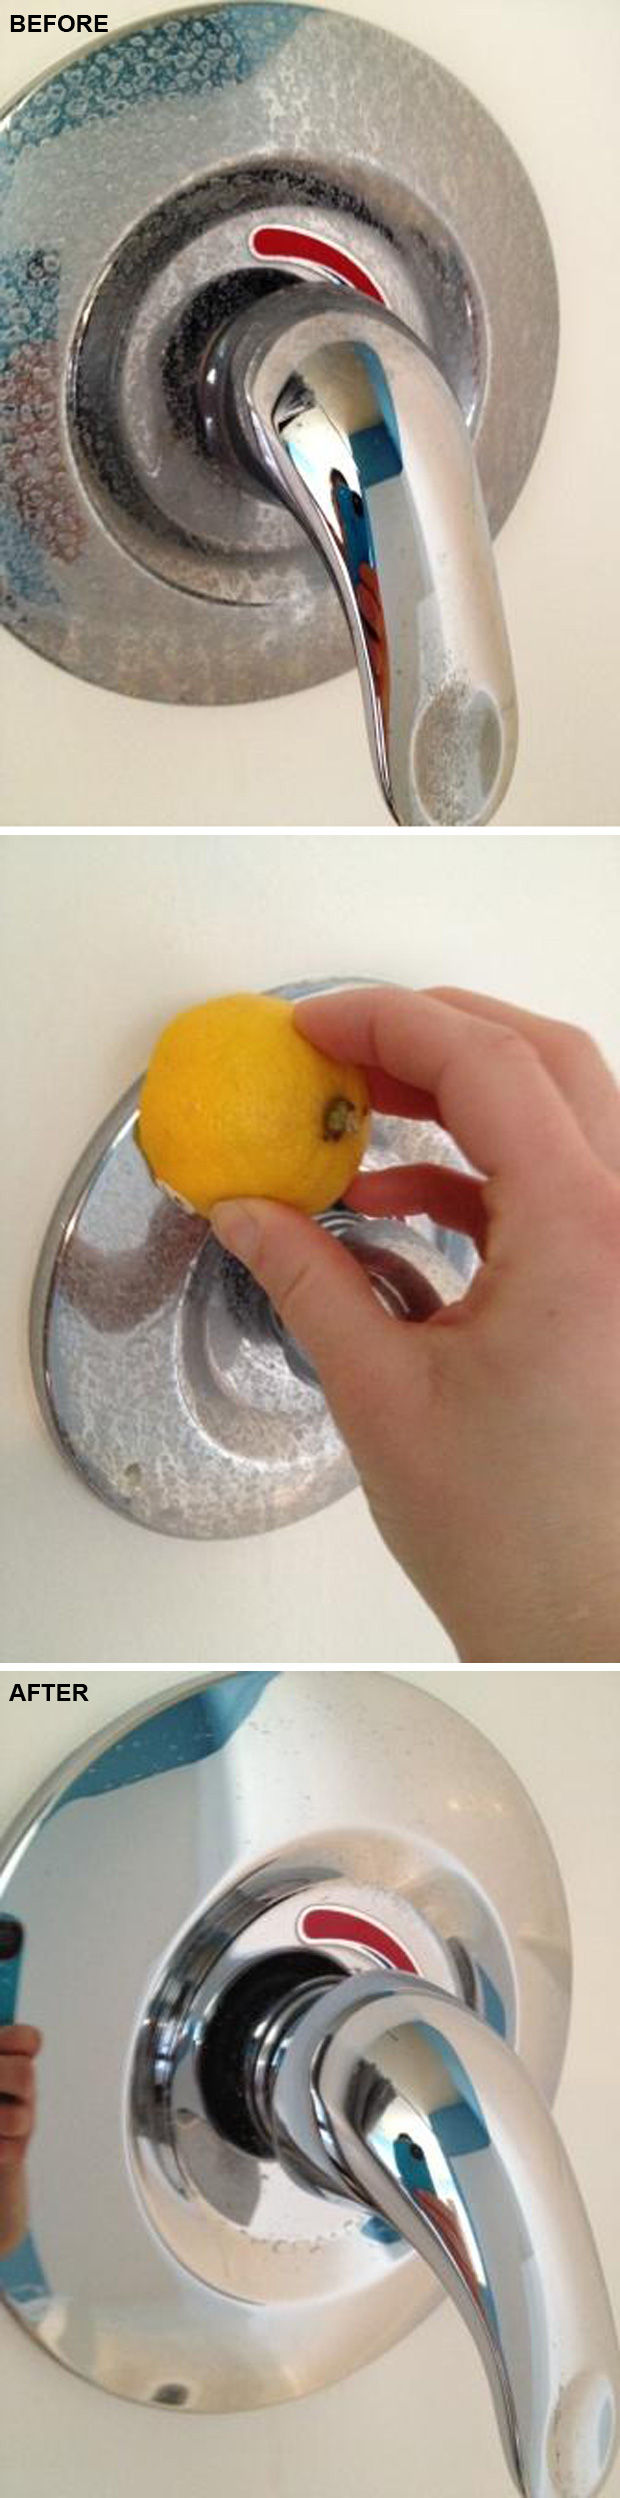 13 Home Cleaning Tips Using Normal Household Ingredients - Use lemons to help remove rust and hard water stains